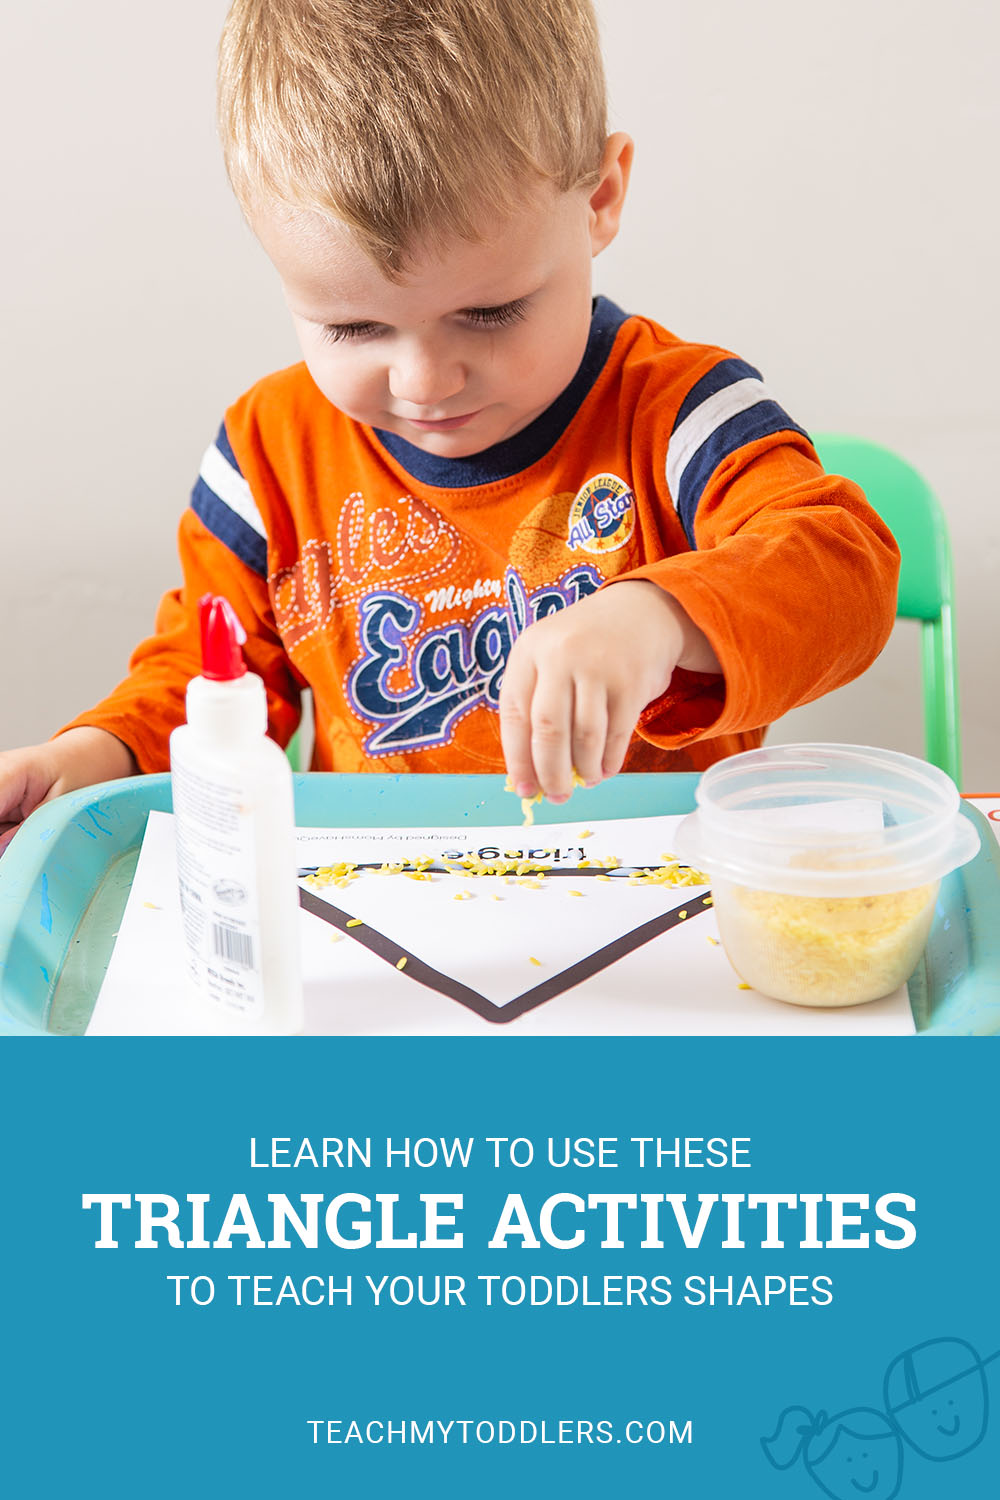 Learn how to use these triangle activities to teach your toddlers shapes